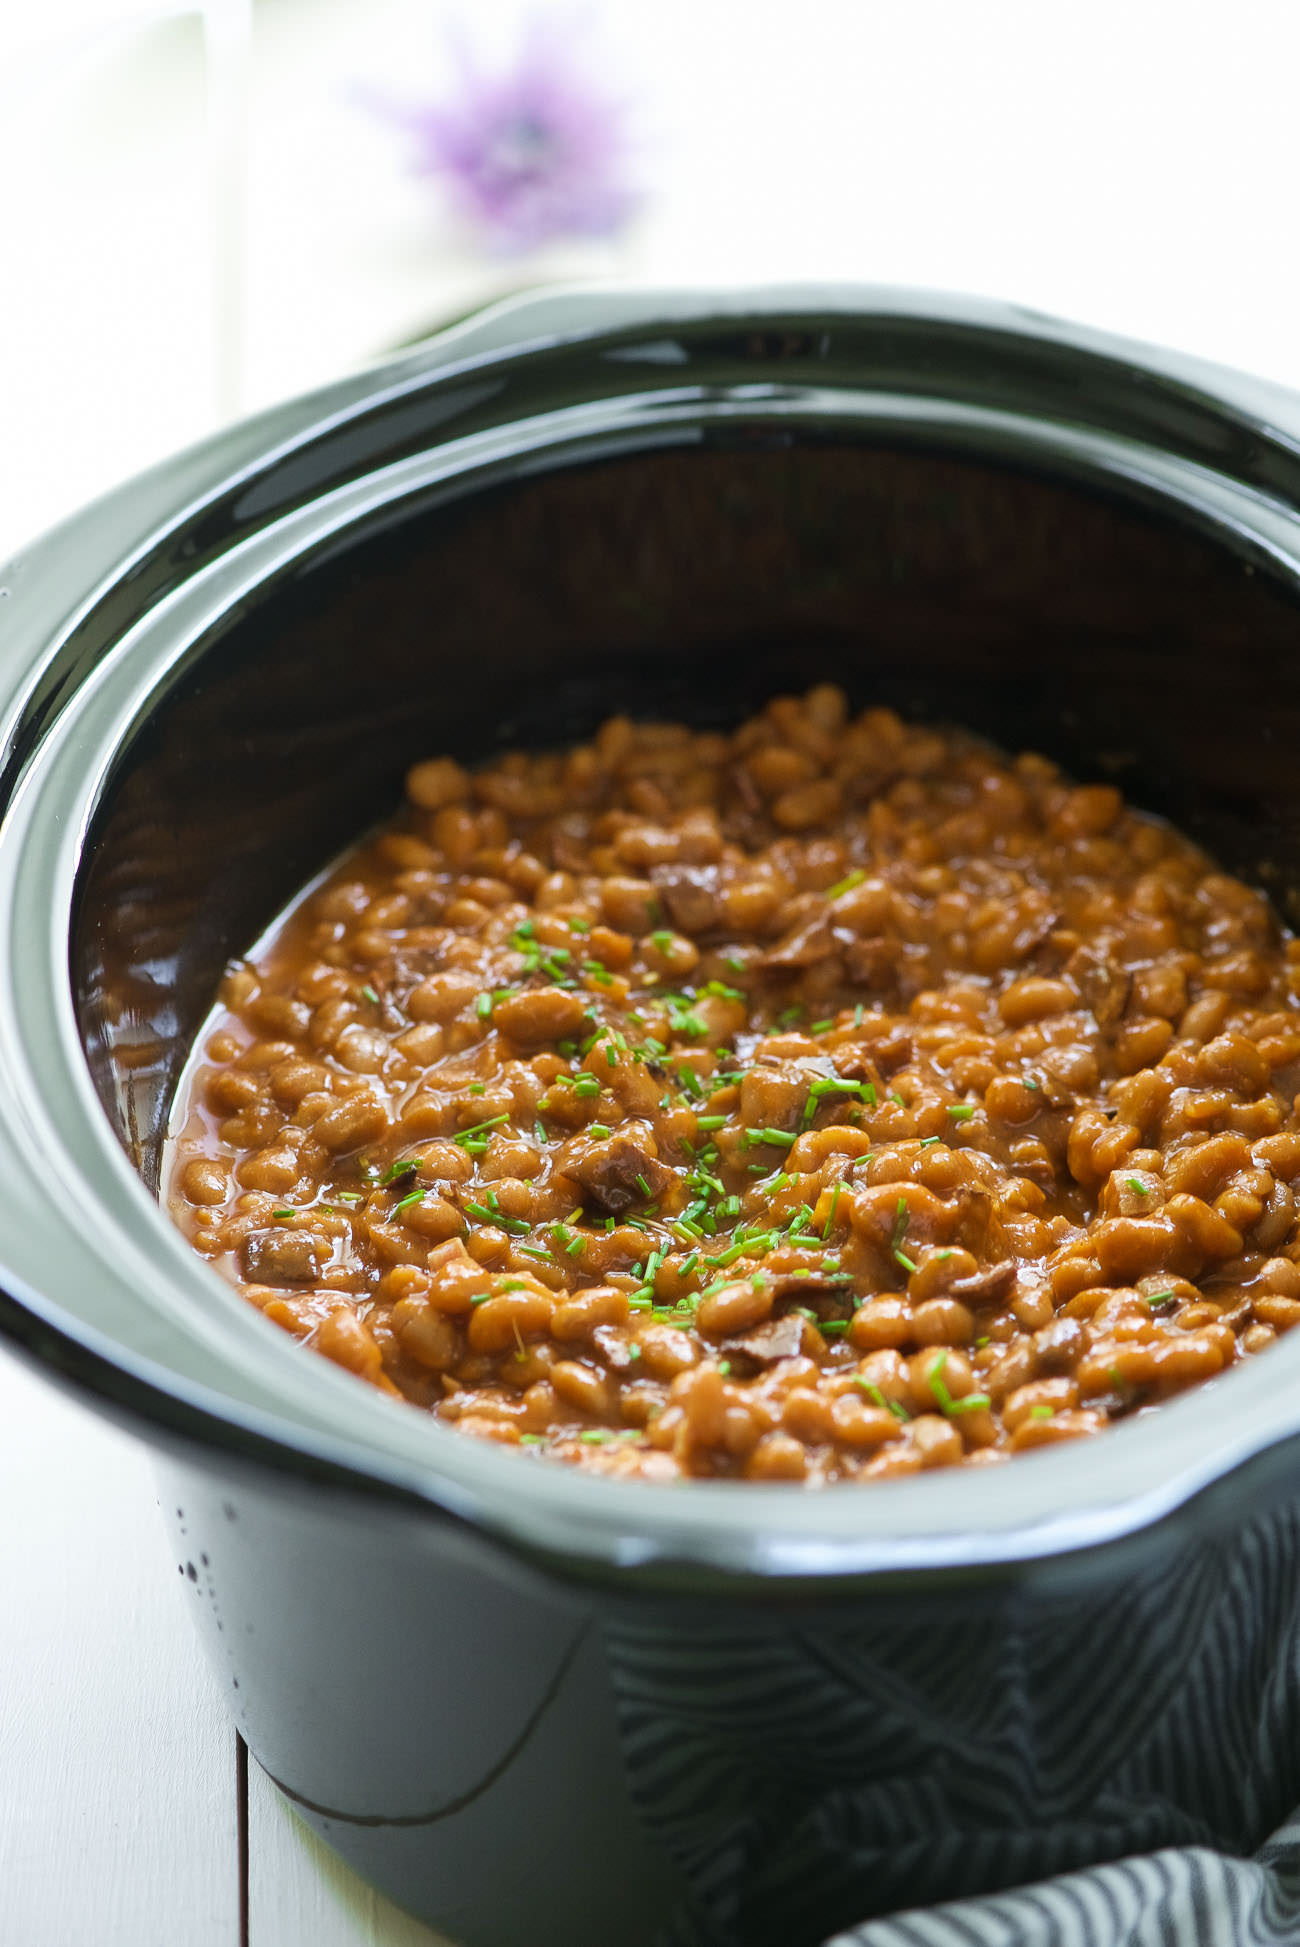 These Slow Cooker Healthy Maple Bacon Baked Beans are a barbeque, get together must have! A healthy twist on the classic bacon baked beans with maple, that allows your slow cooker do all the work.